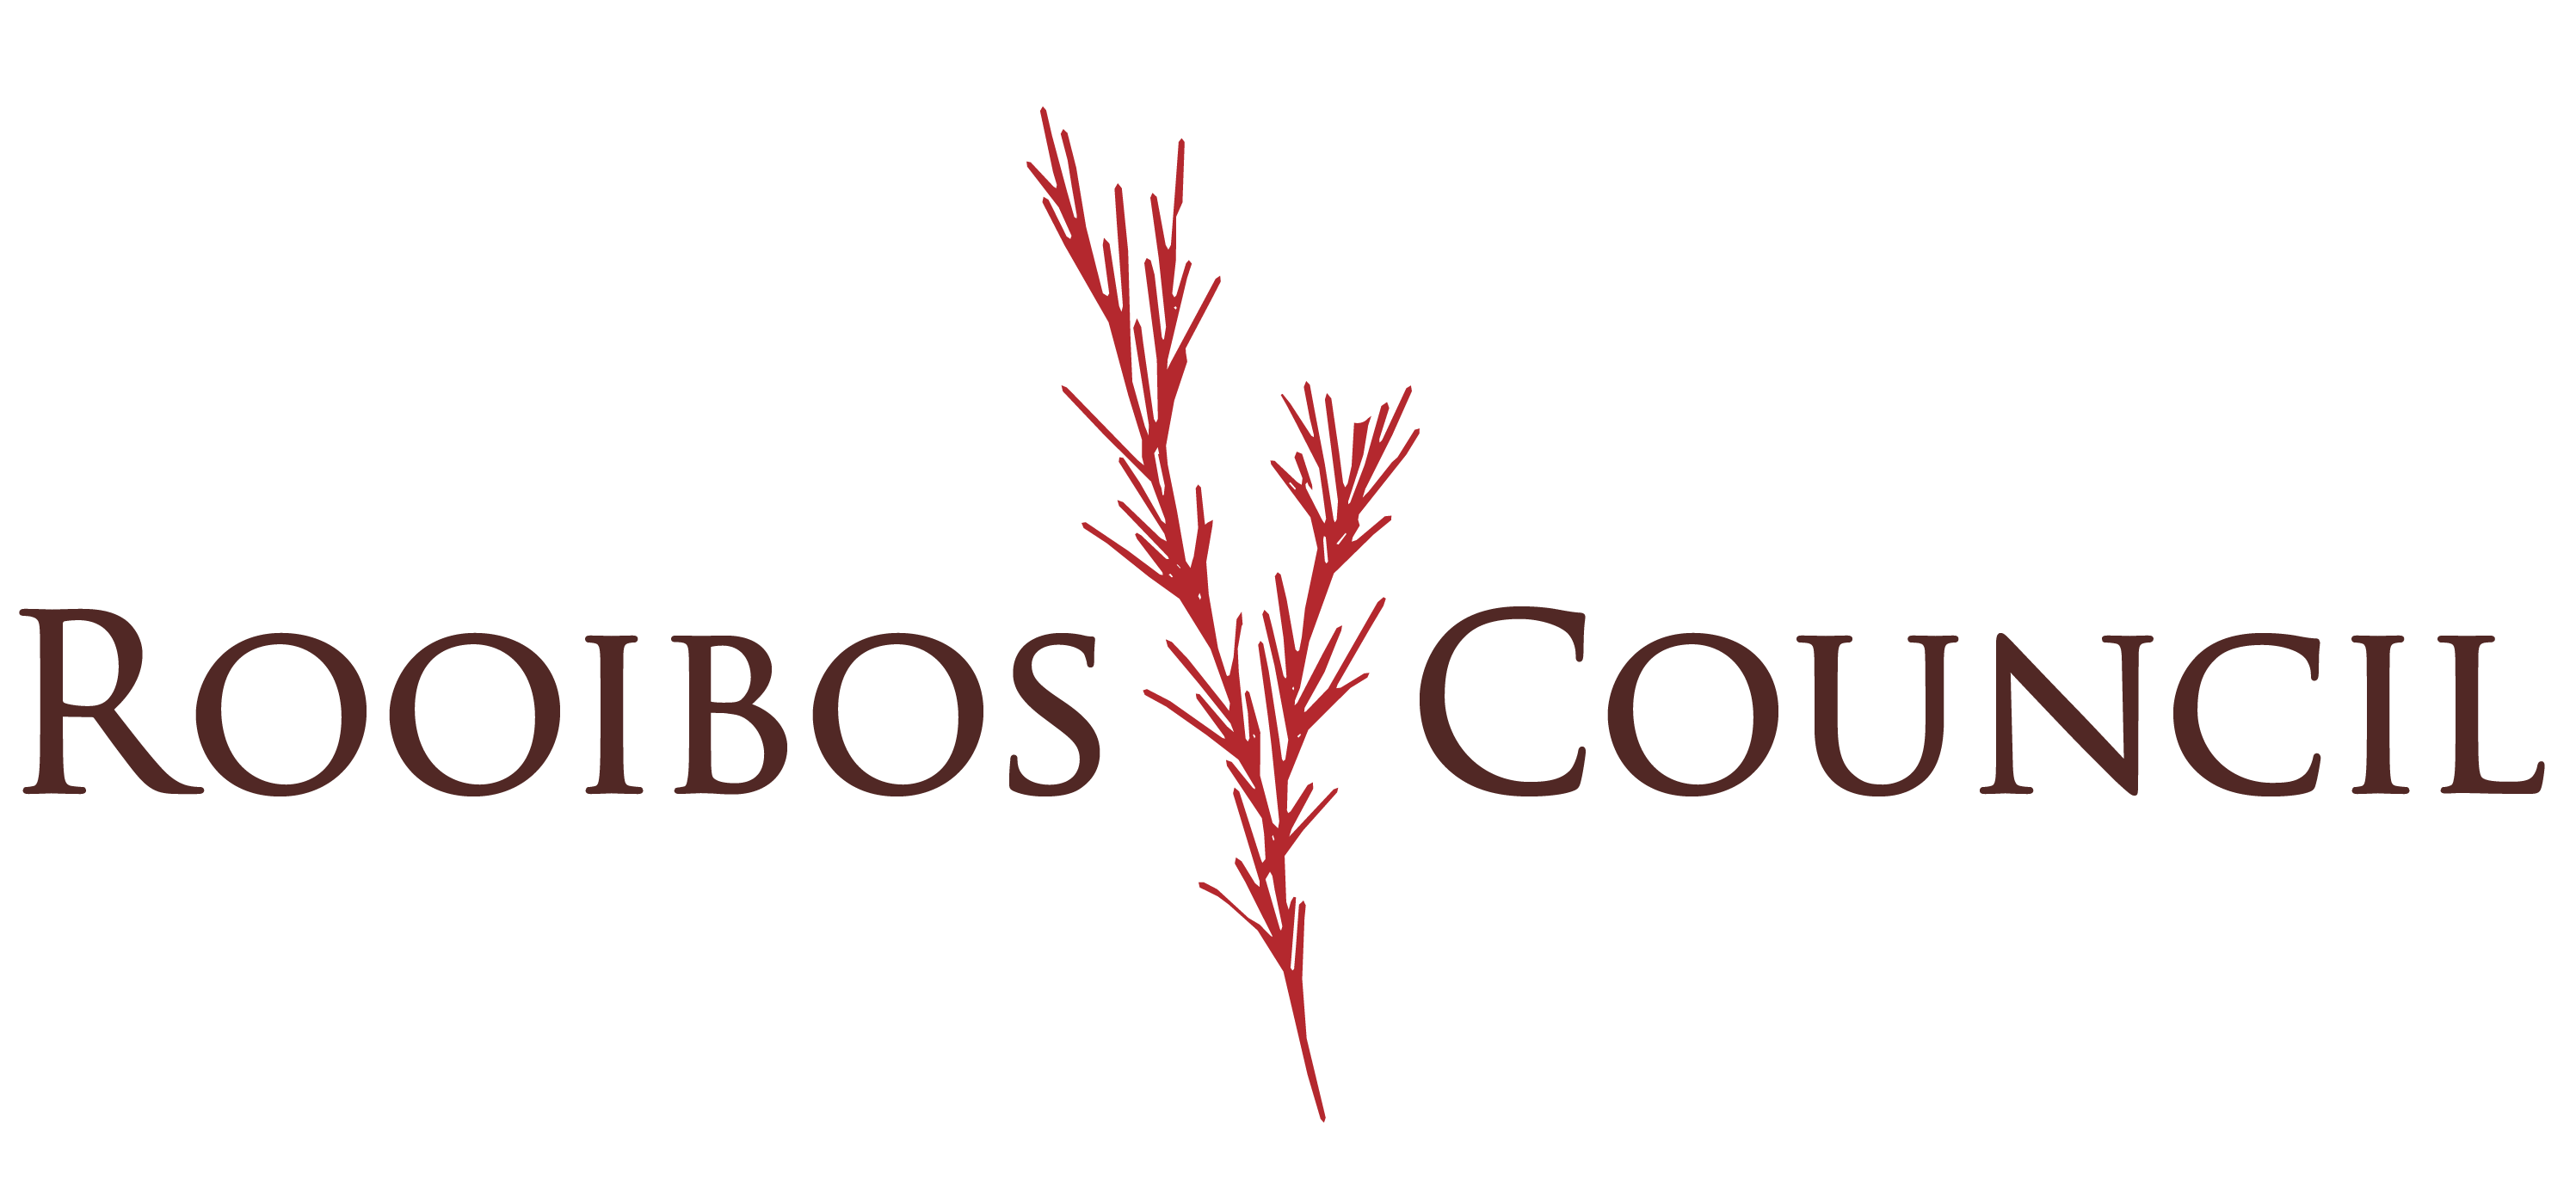 Rooibos Council - South Africa